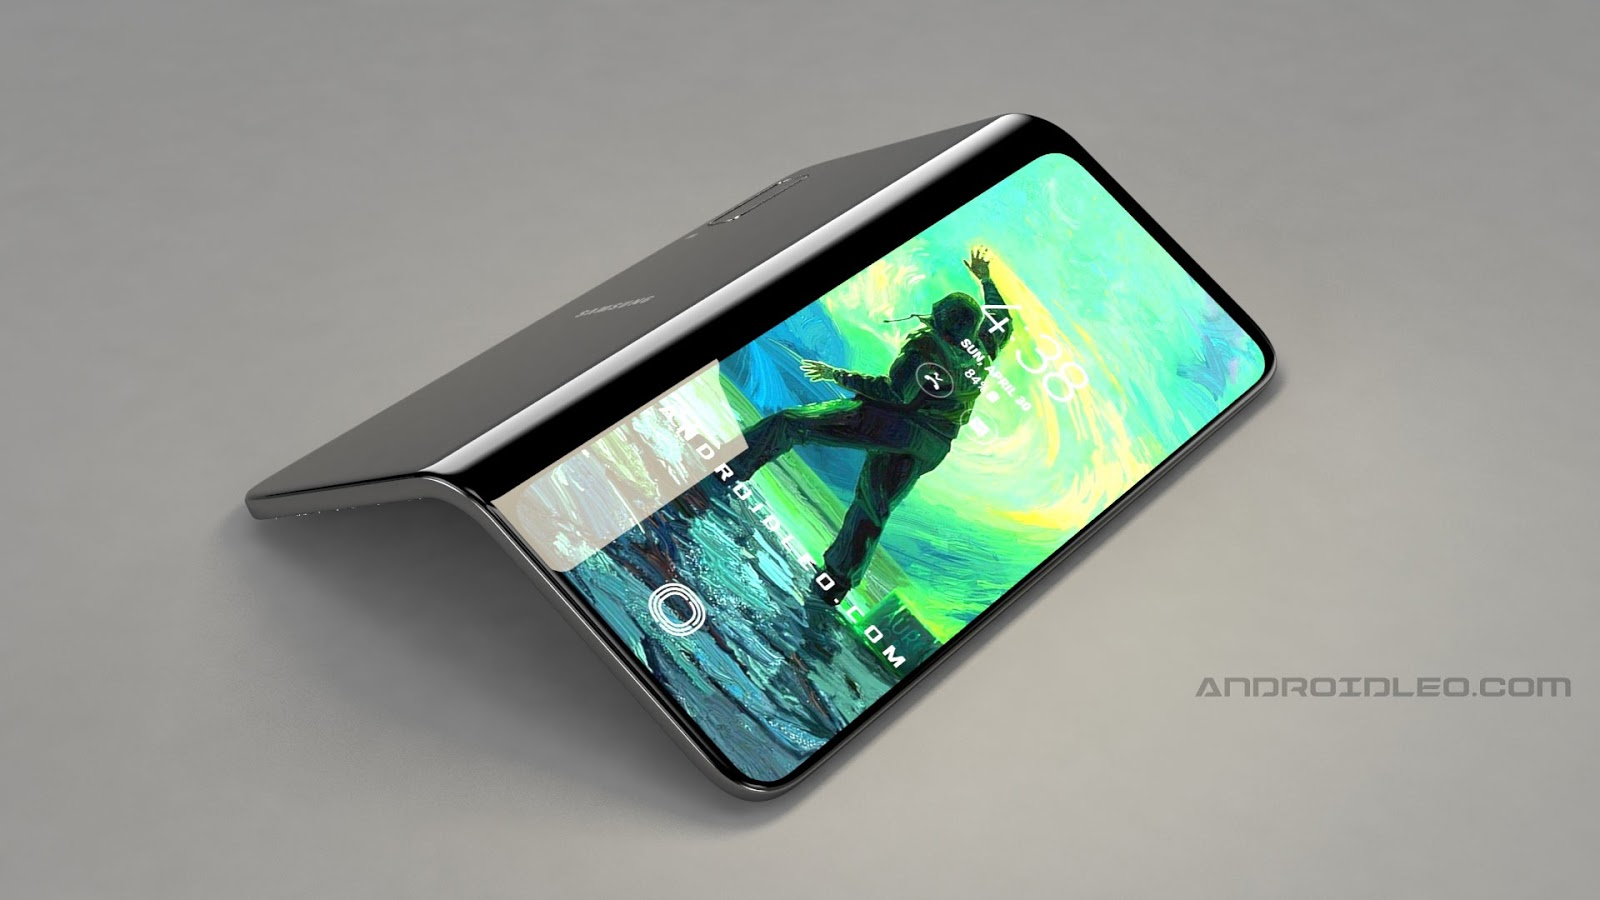 Foldable Screen Phone: Samsung is Convinced You Need It – But Do You?